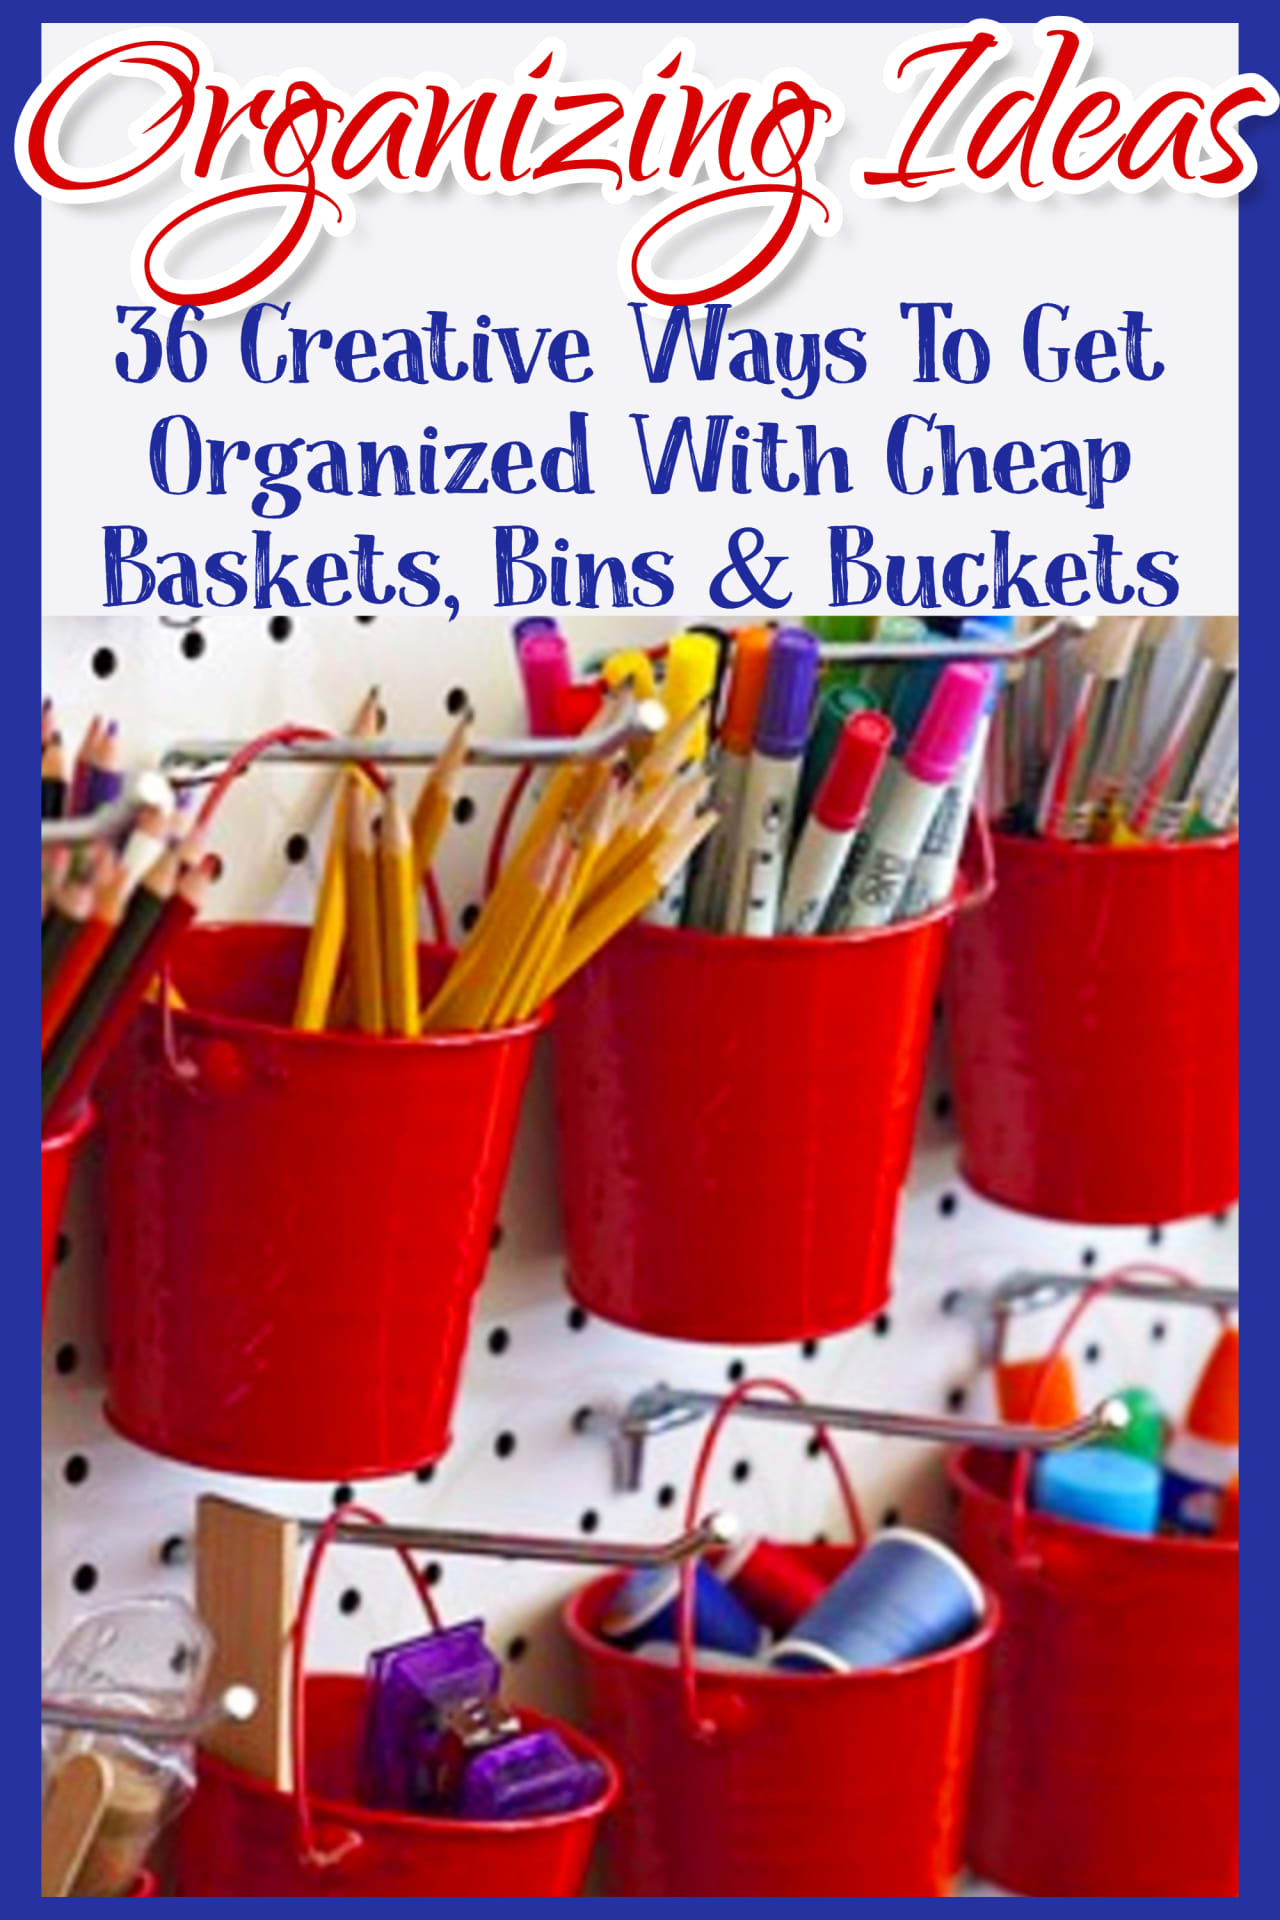 Organizing with baskets, bins and buckets from dollar stores - clutter organization hacks using basket organization ideas